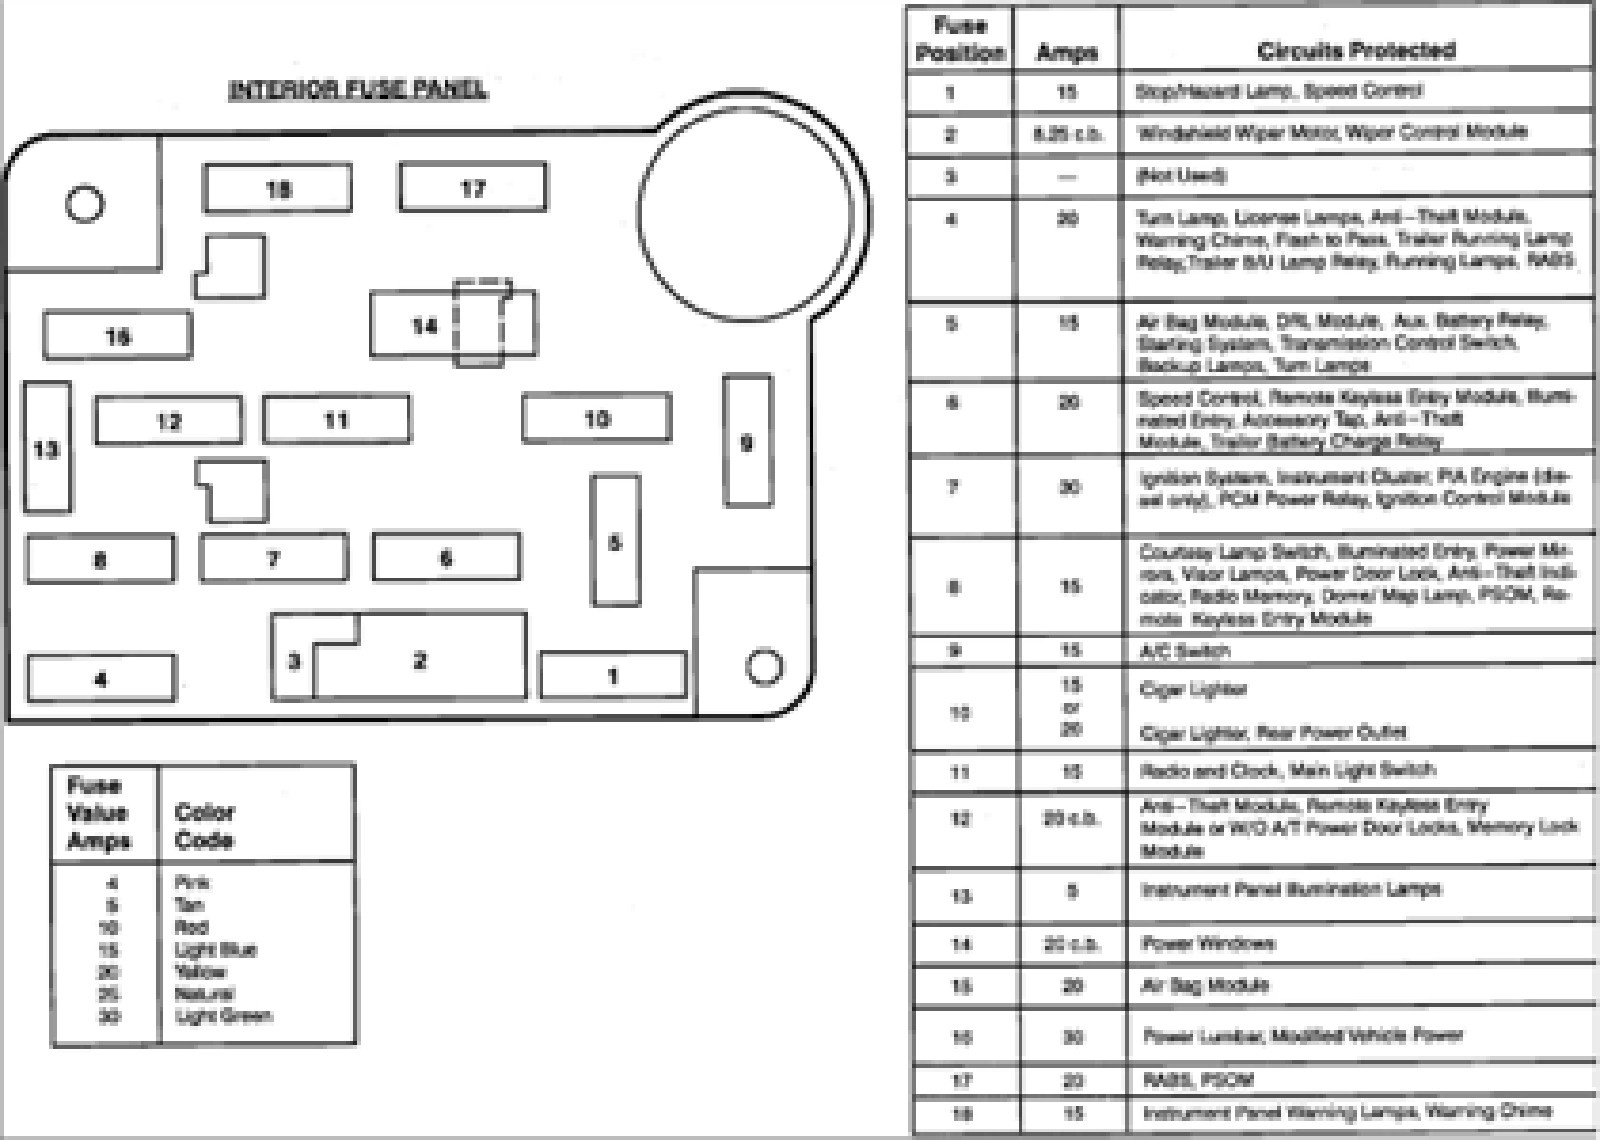 1997 F150 Fuse Diagram - Wiring Diagrams Hubs Honda Accord Stereo Wiring Diagram on 1991 honda accord wiring diagram, 1996 honda accord wiring diagram, 2005 honda accord wiring diagram, honda accord battery diagram, honda radio wire diagram, 98 honda accord wiring diagram, honda accord stereo installation kit, 1997 honda civic cooling fan diagram, 2001 honda accord wiring diagram, honda accord stereo replacement, 2012 toyota camry wiring diagram, 2001 chevy impala radio wiring diagram, 99 honda accord wiring diagram, 1990 honda accord wiring diagram, 1992 honda accord wiring diagram, honda accord wiring harness, 1994 honda accord wiring diagram, 93 civic radio wiring diagram, 93 accord radio diagram, 94 honda accord wiring diagram,